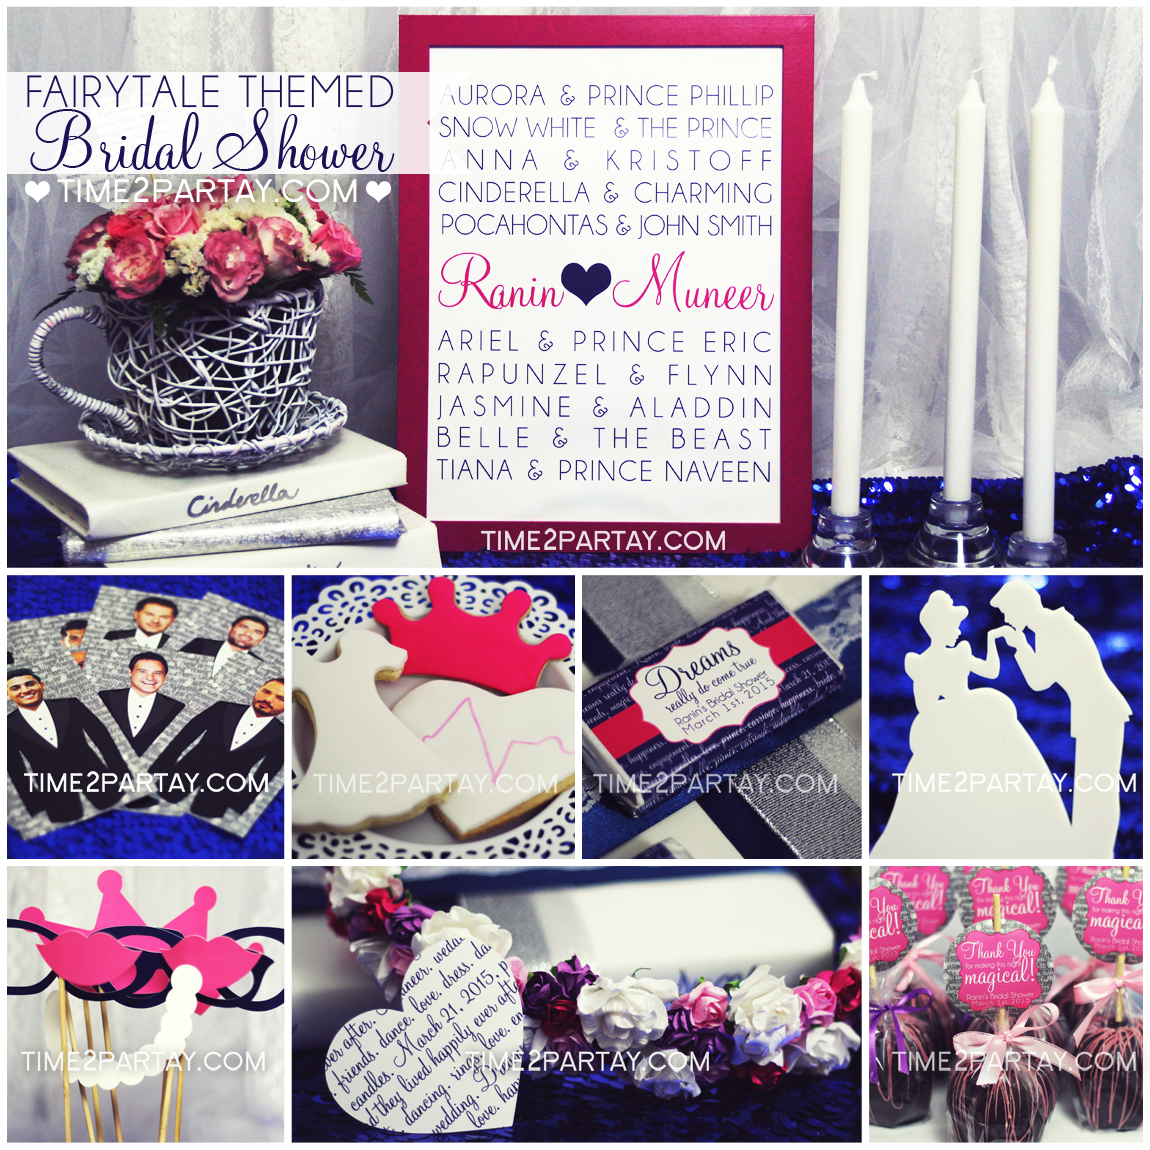 every couples love story is a unique fairytale and every bride deserves to feel like a princess this bride to be didnt expect her bridal shower to be